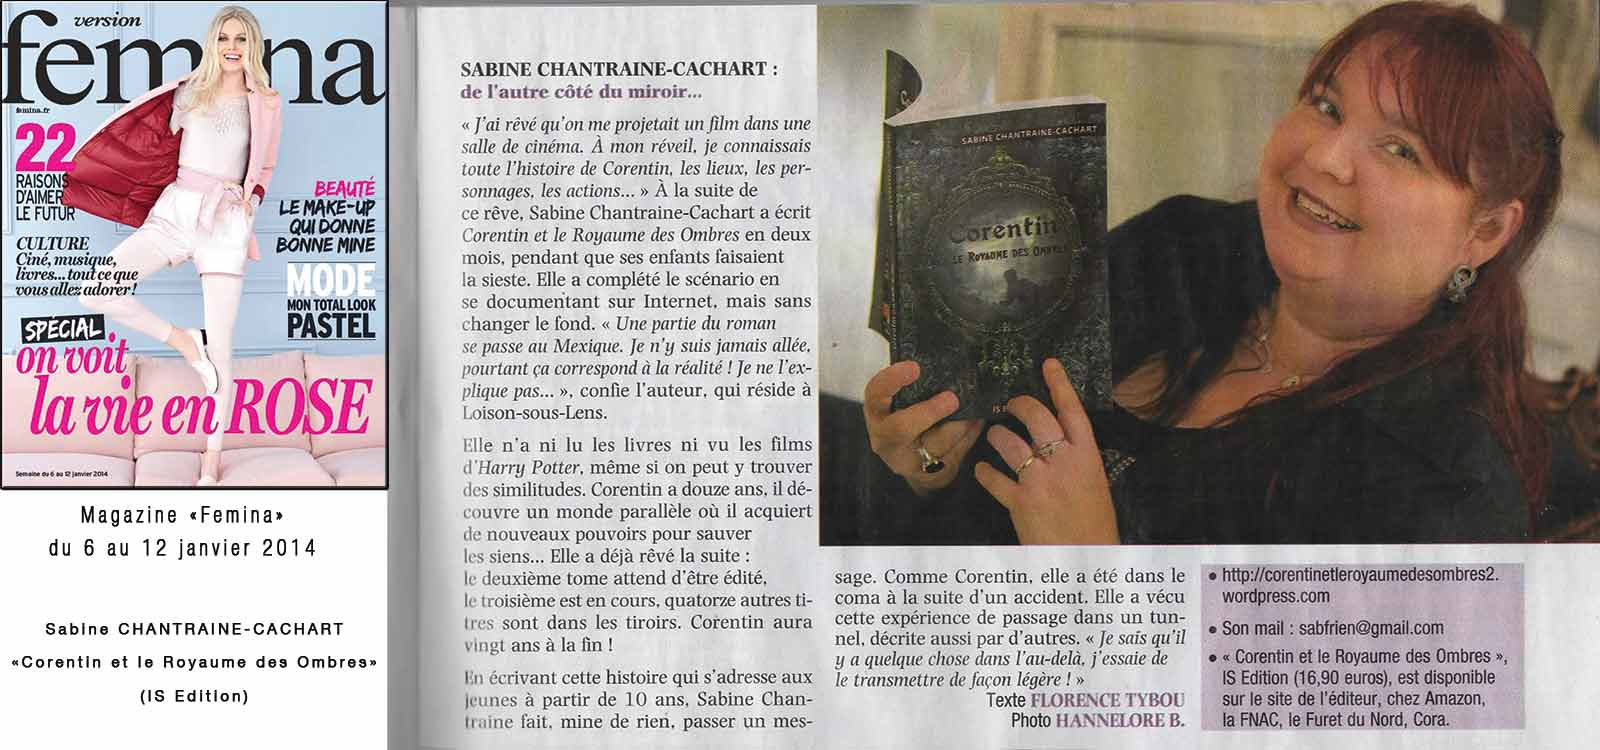 Interview de Sabine Chantraine dans le mag Femina